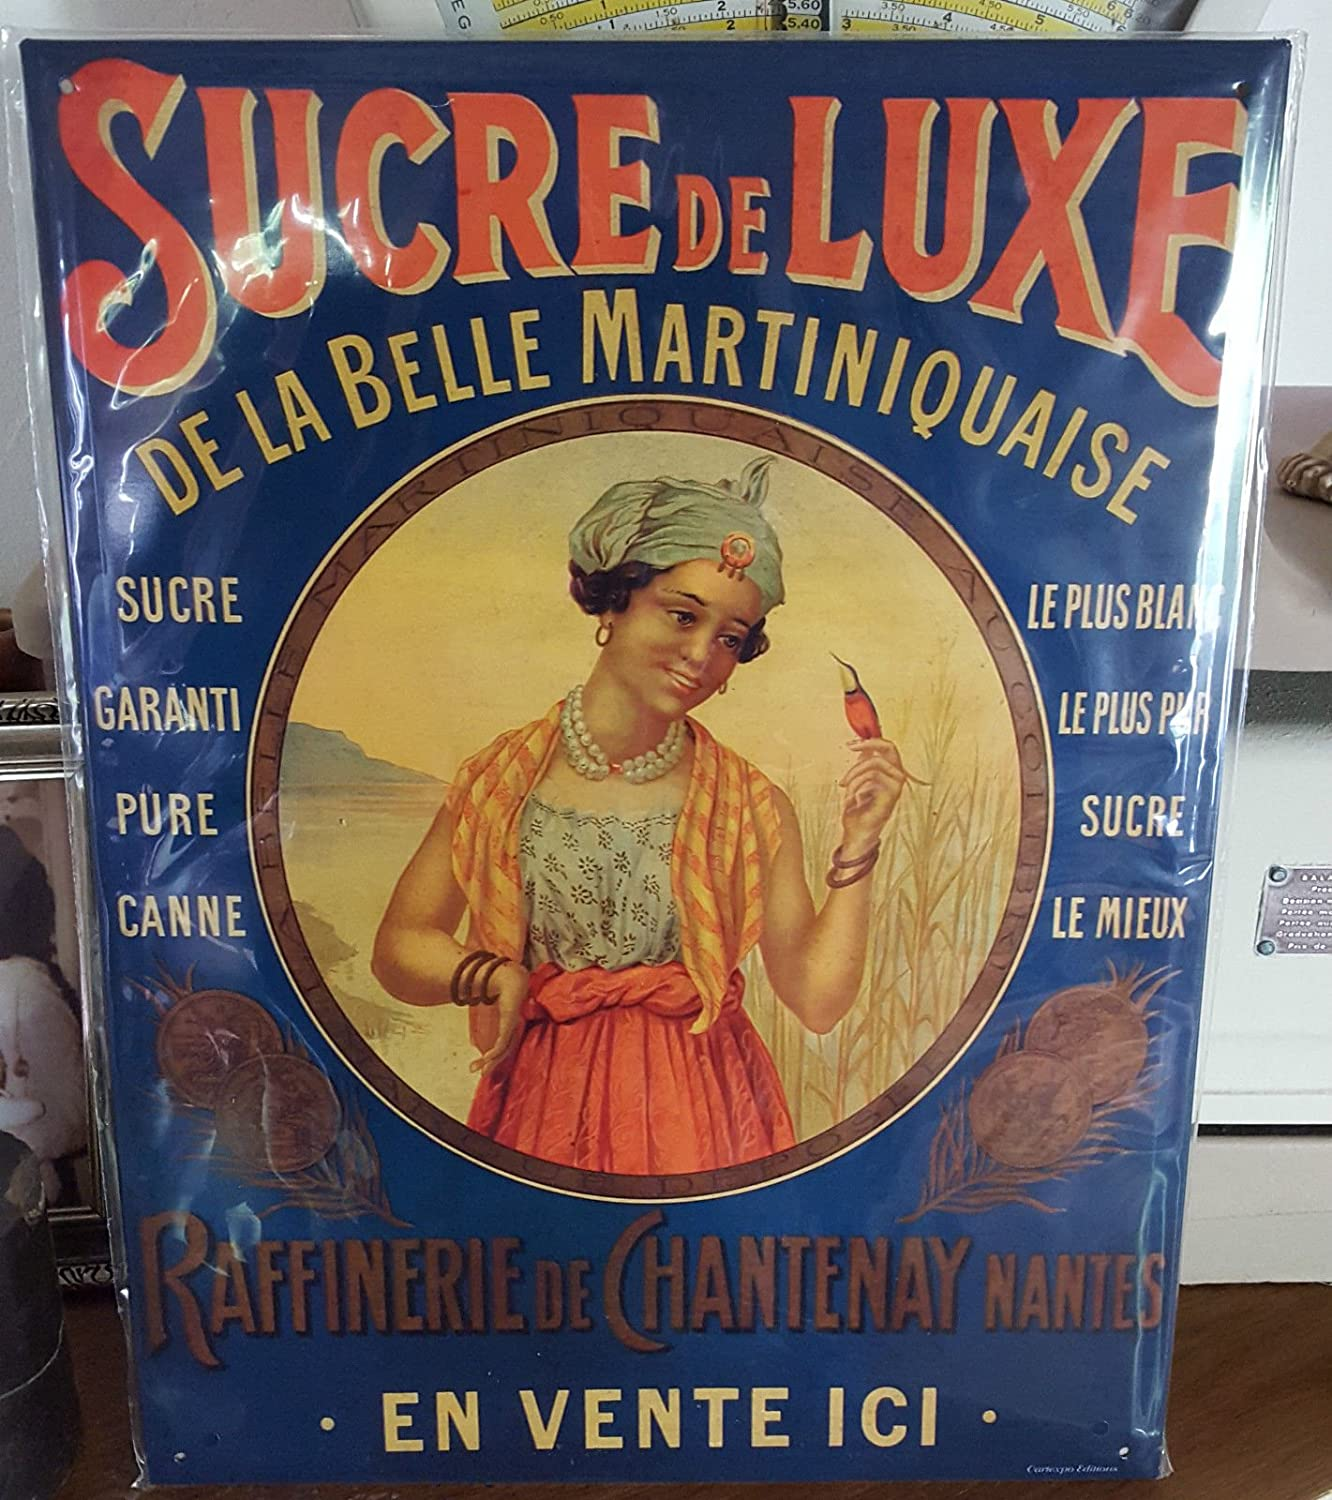 Amazon.com: FRENCH VINTAGE METAL SIGN 40X30cm RETRO AD ...